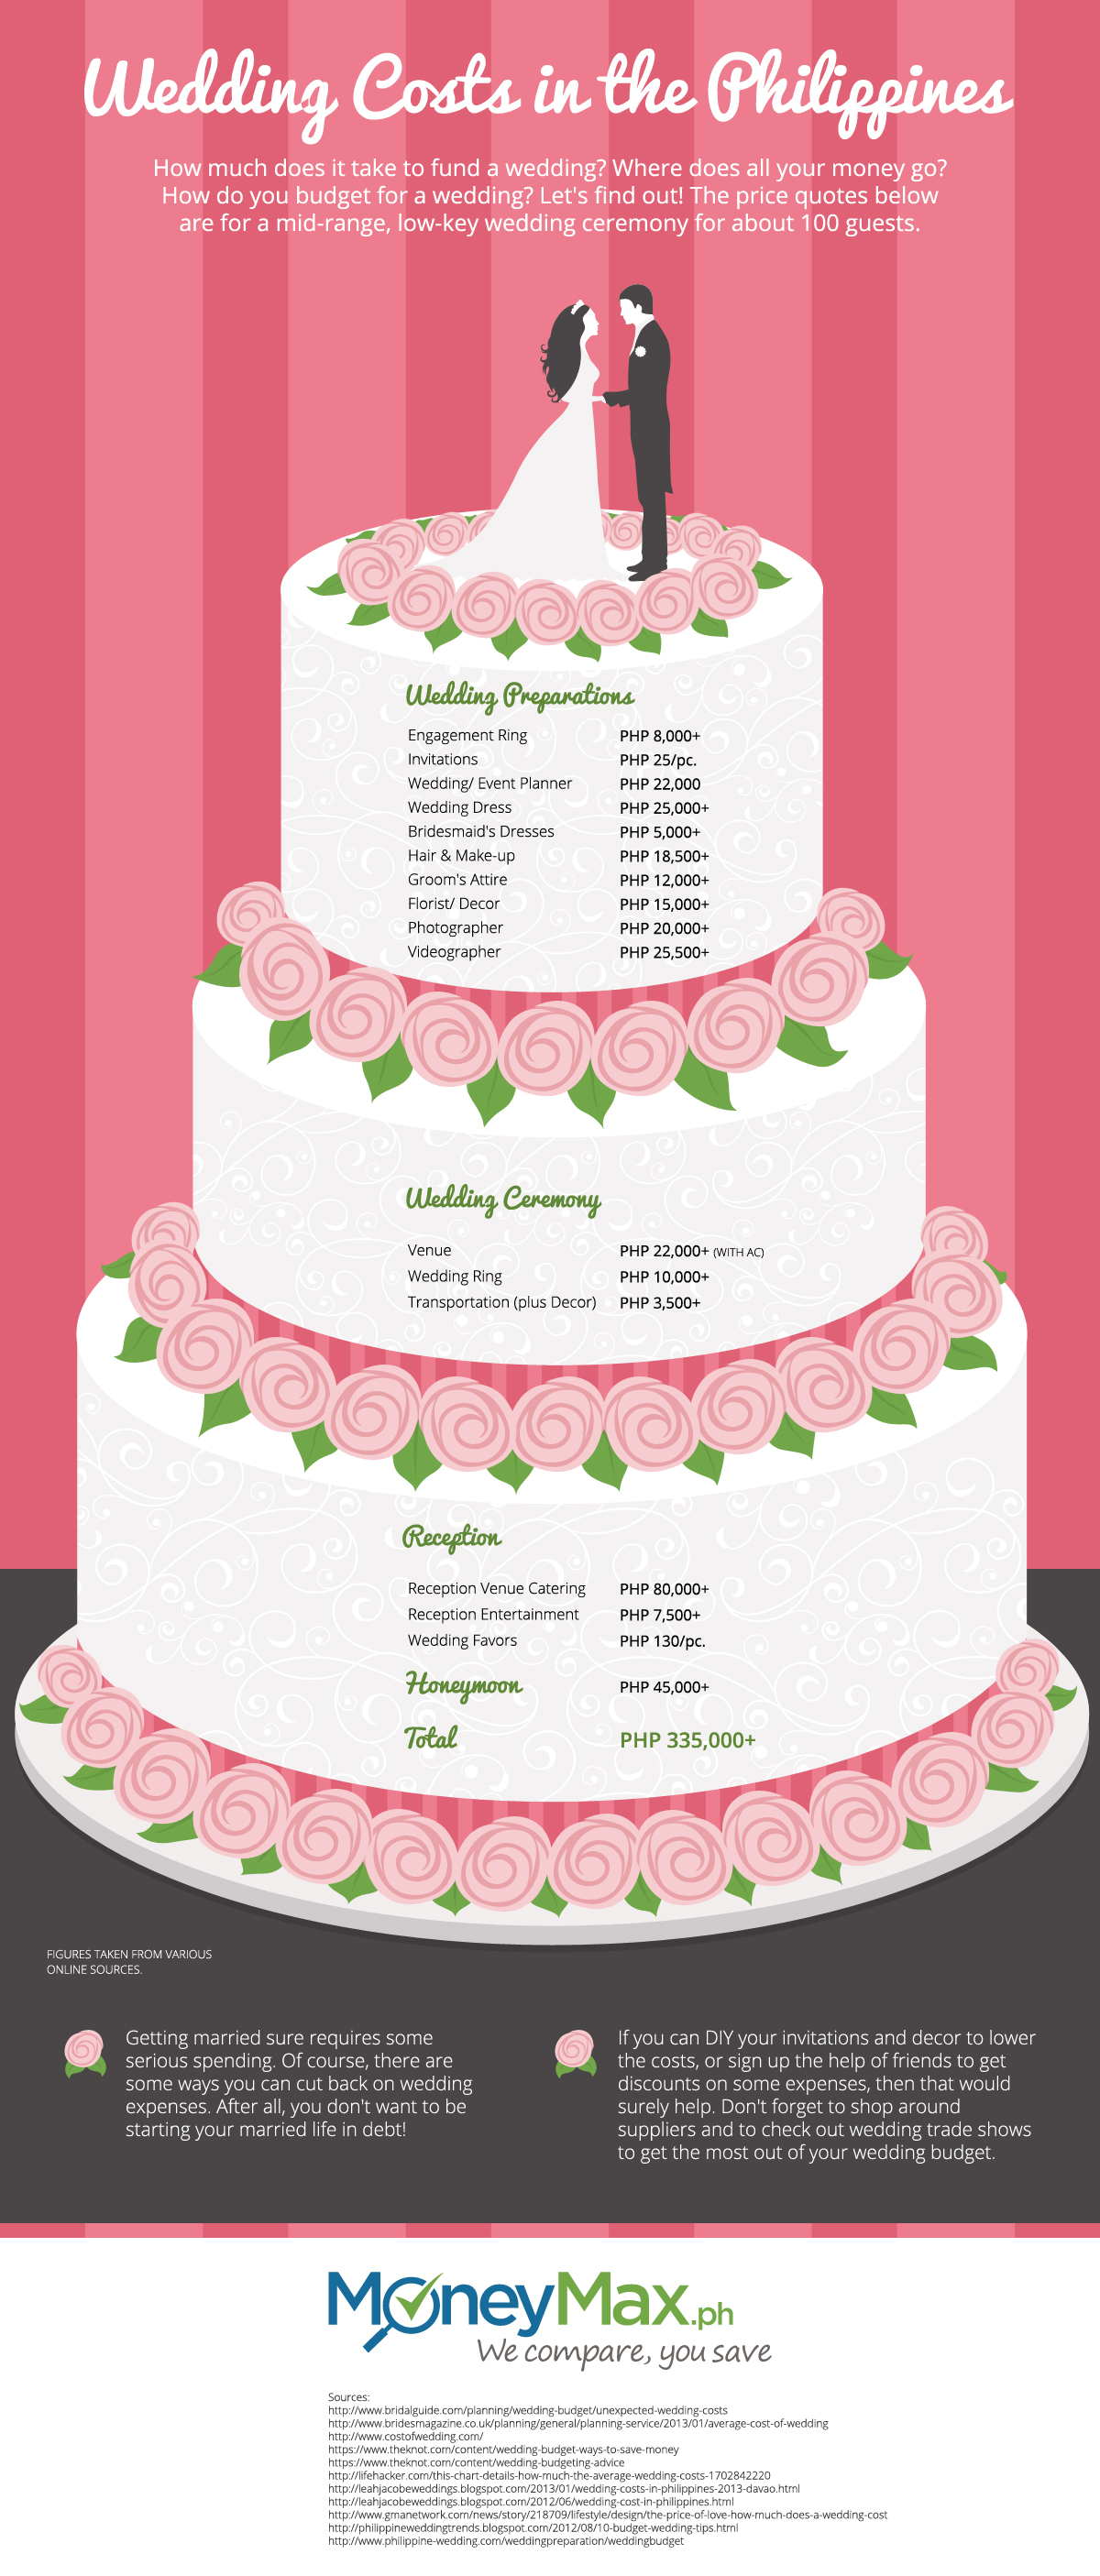 how much does a wedding cost in the philippines? - weddings in the